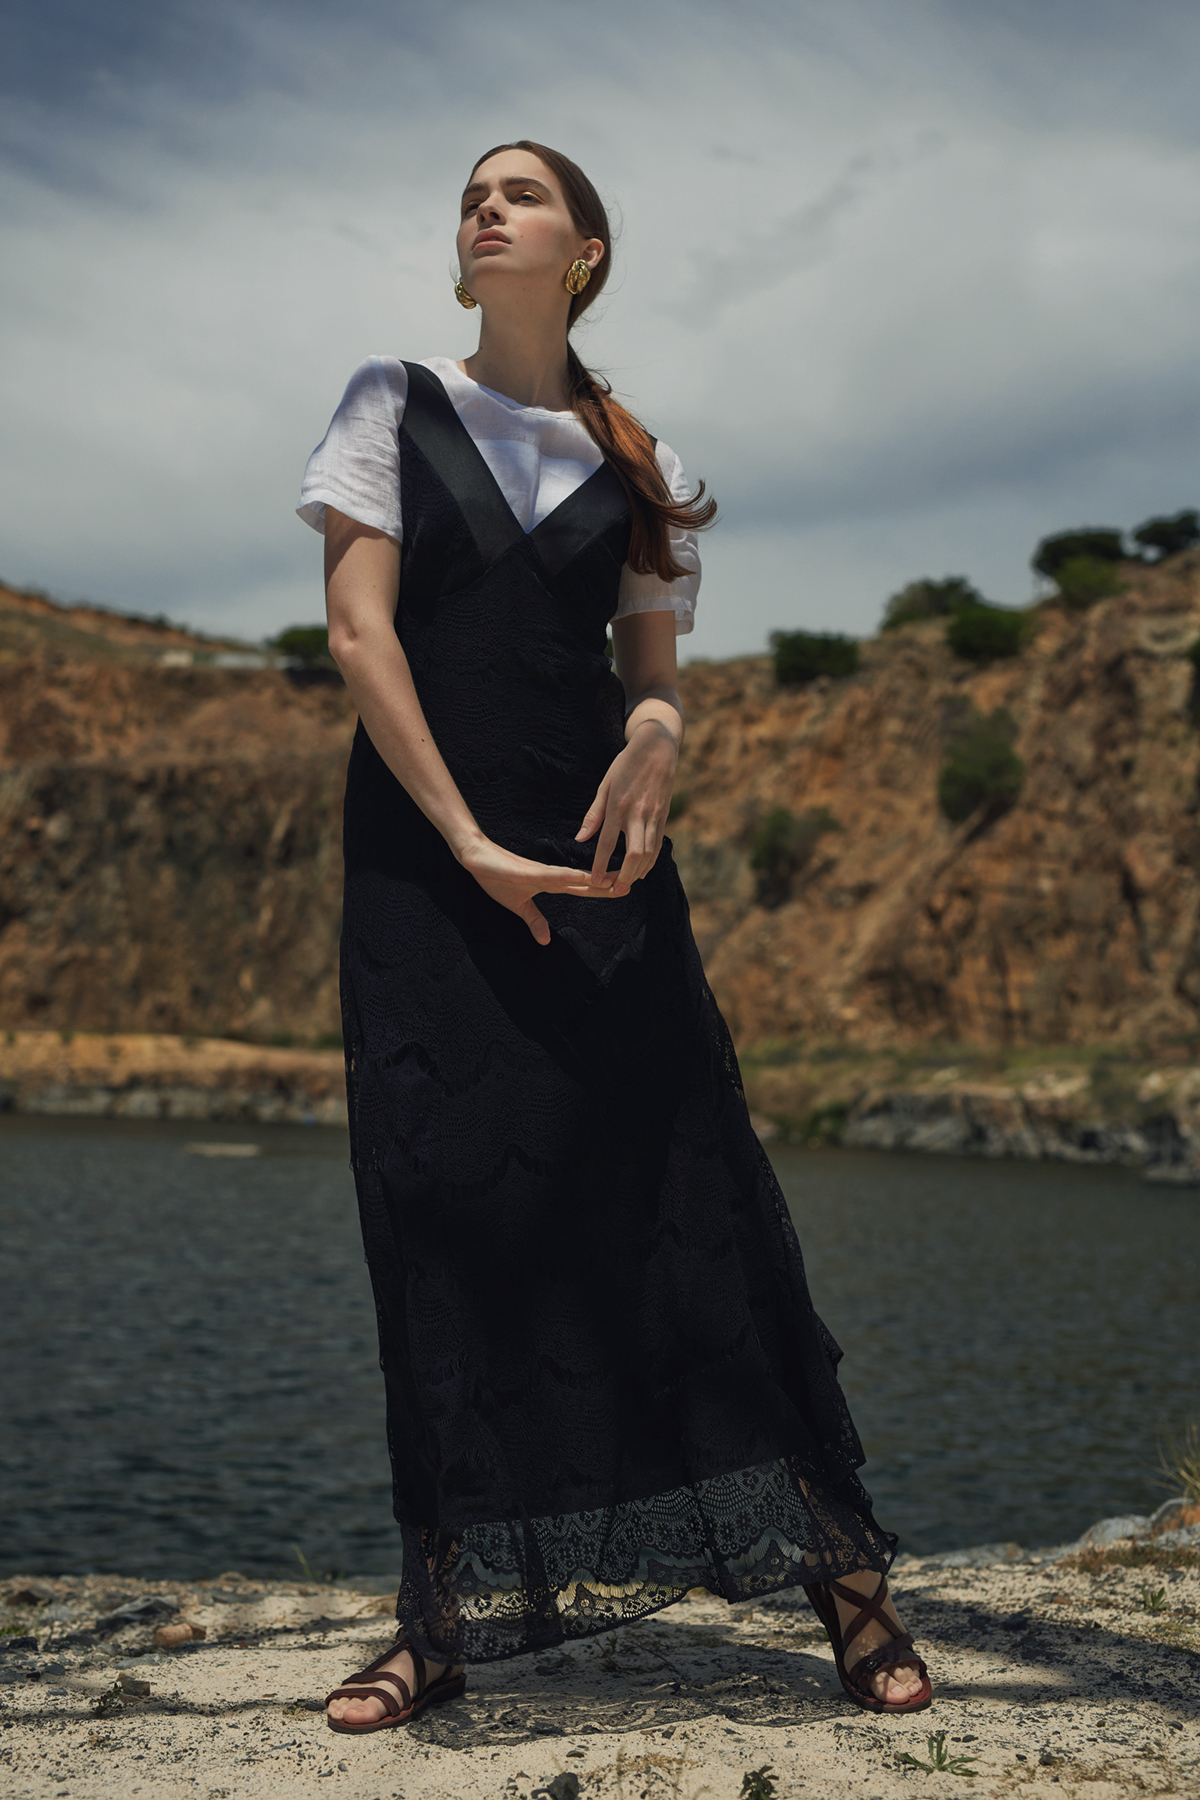 White linen tee,Amanda Laird Cherry; black lace dress, Cheryl Arthur; vintage gold earrings and leather sandals (worn throughout), stylist's own